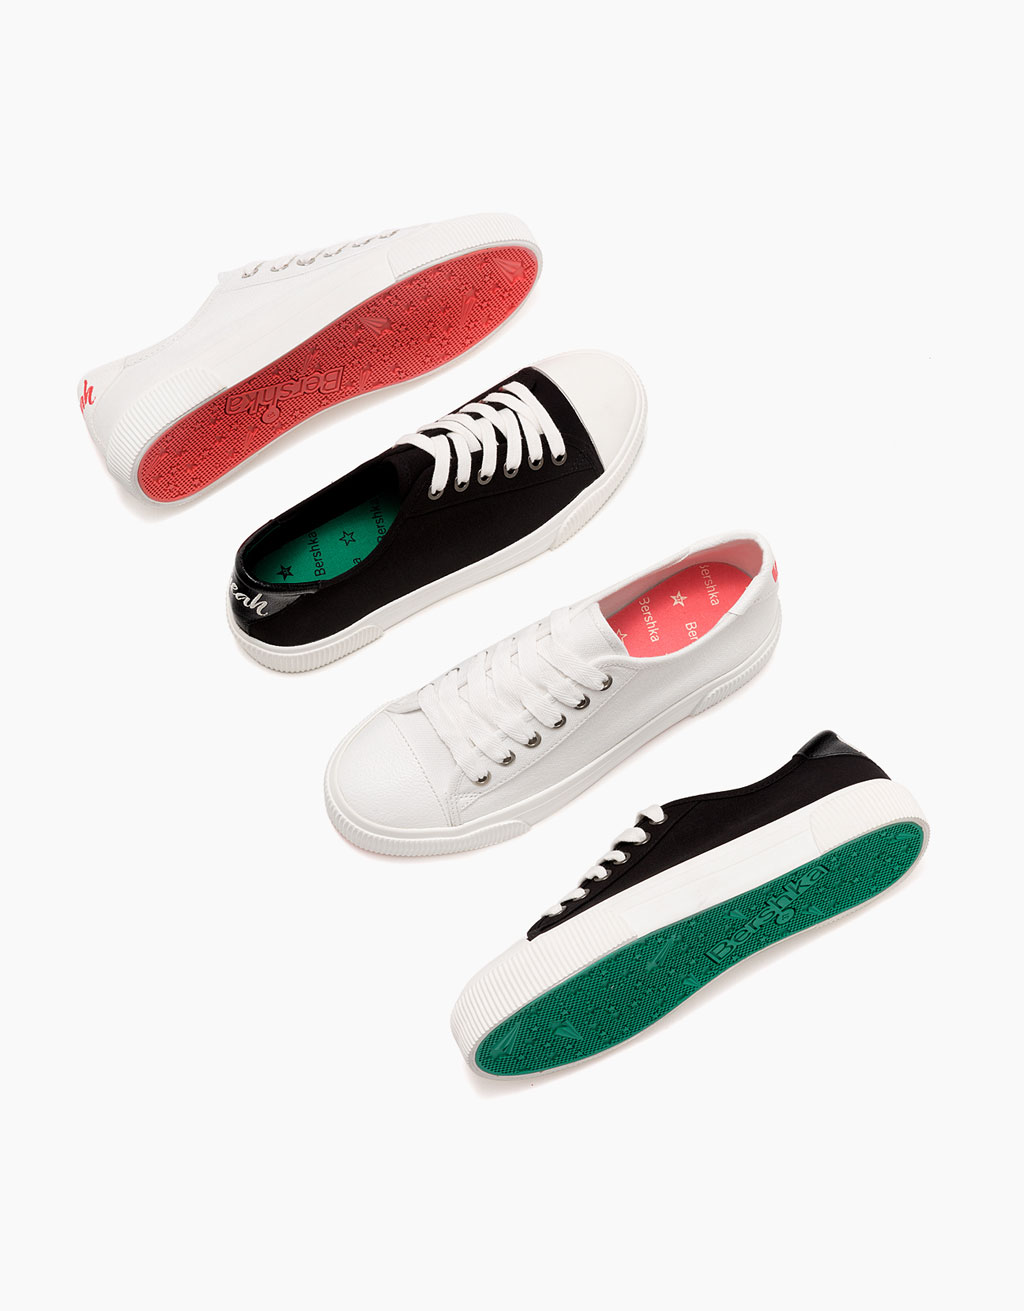 Lace-up fabric sneakers with rubber toe cap